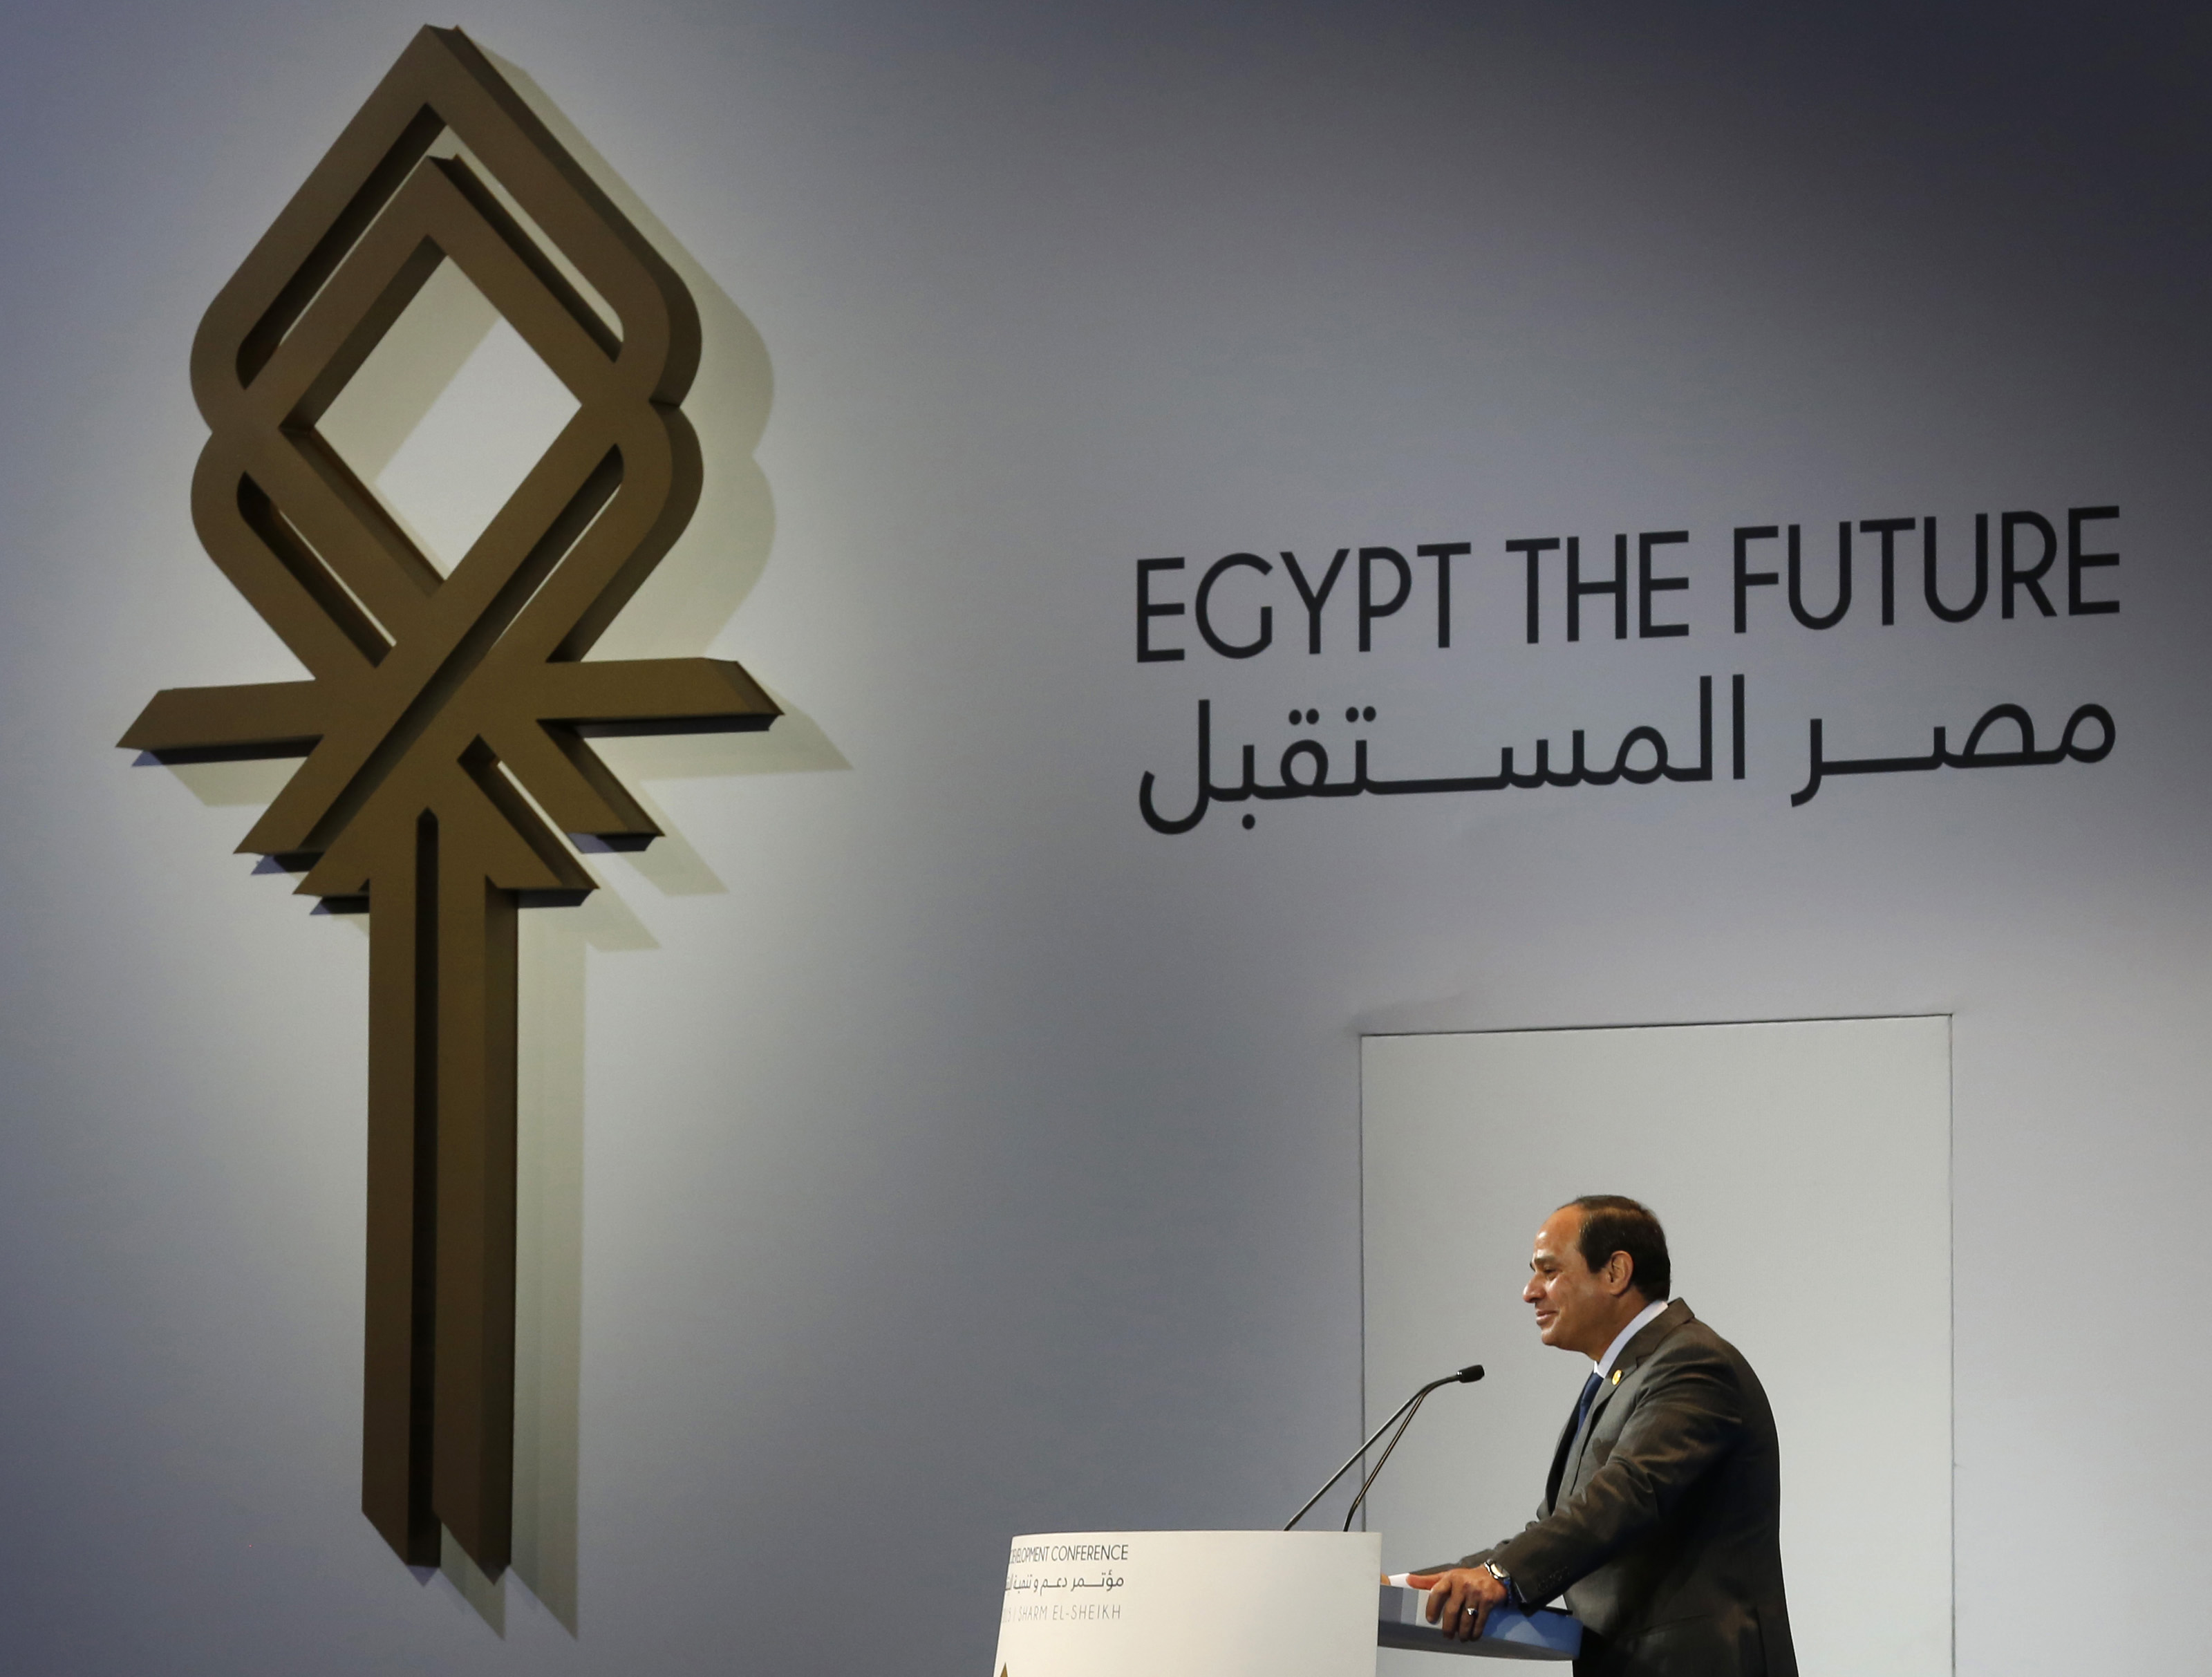 Egyptian economy's growth rate expected to decline in 2016 – World Bank